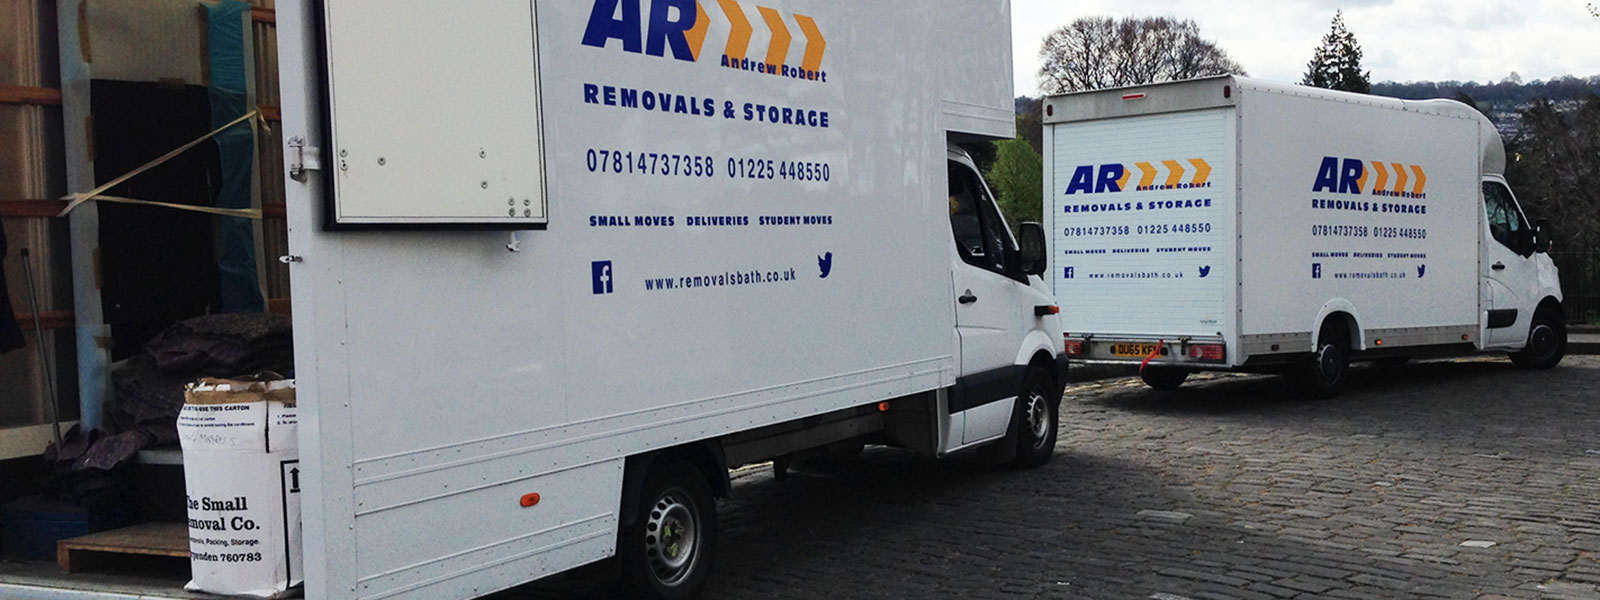 Bradford-on-Avon Removals Company